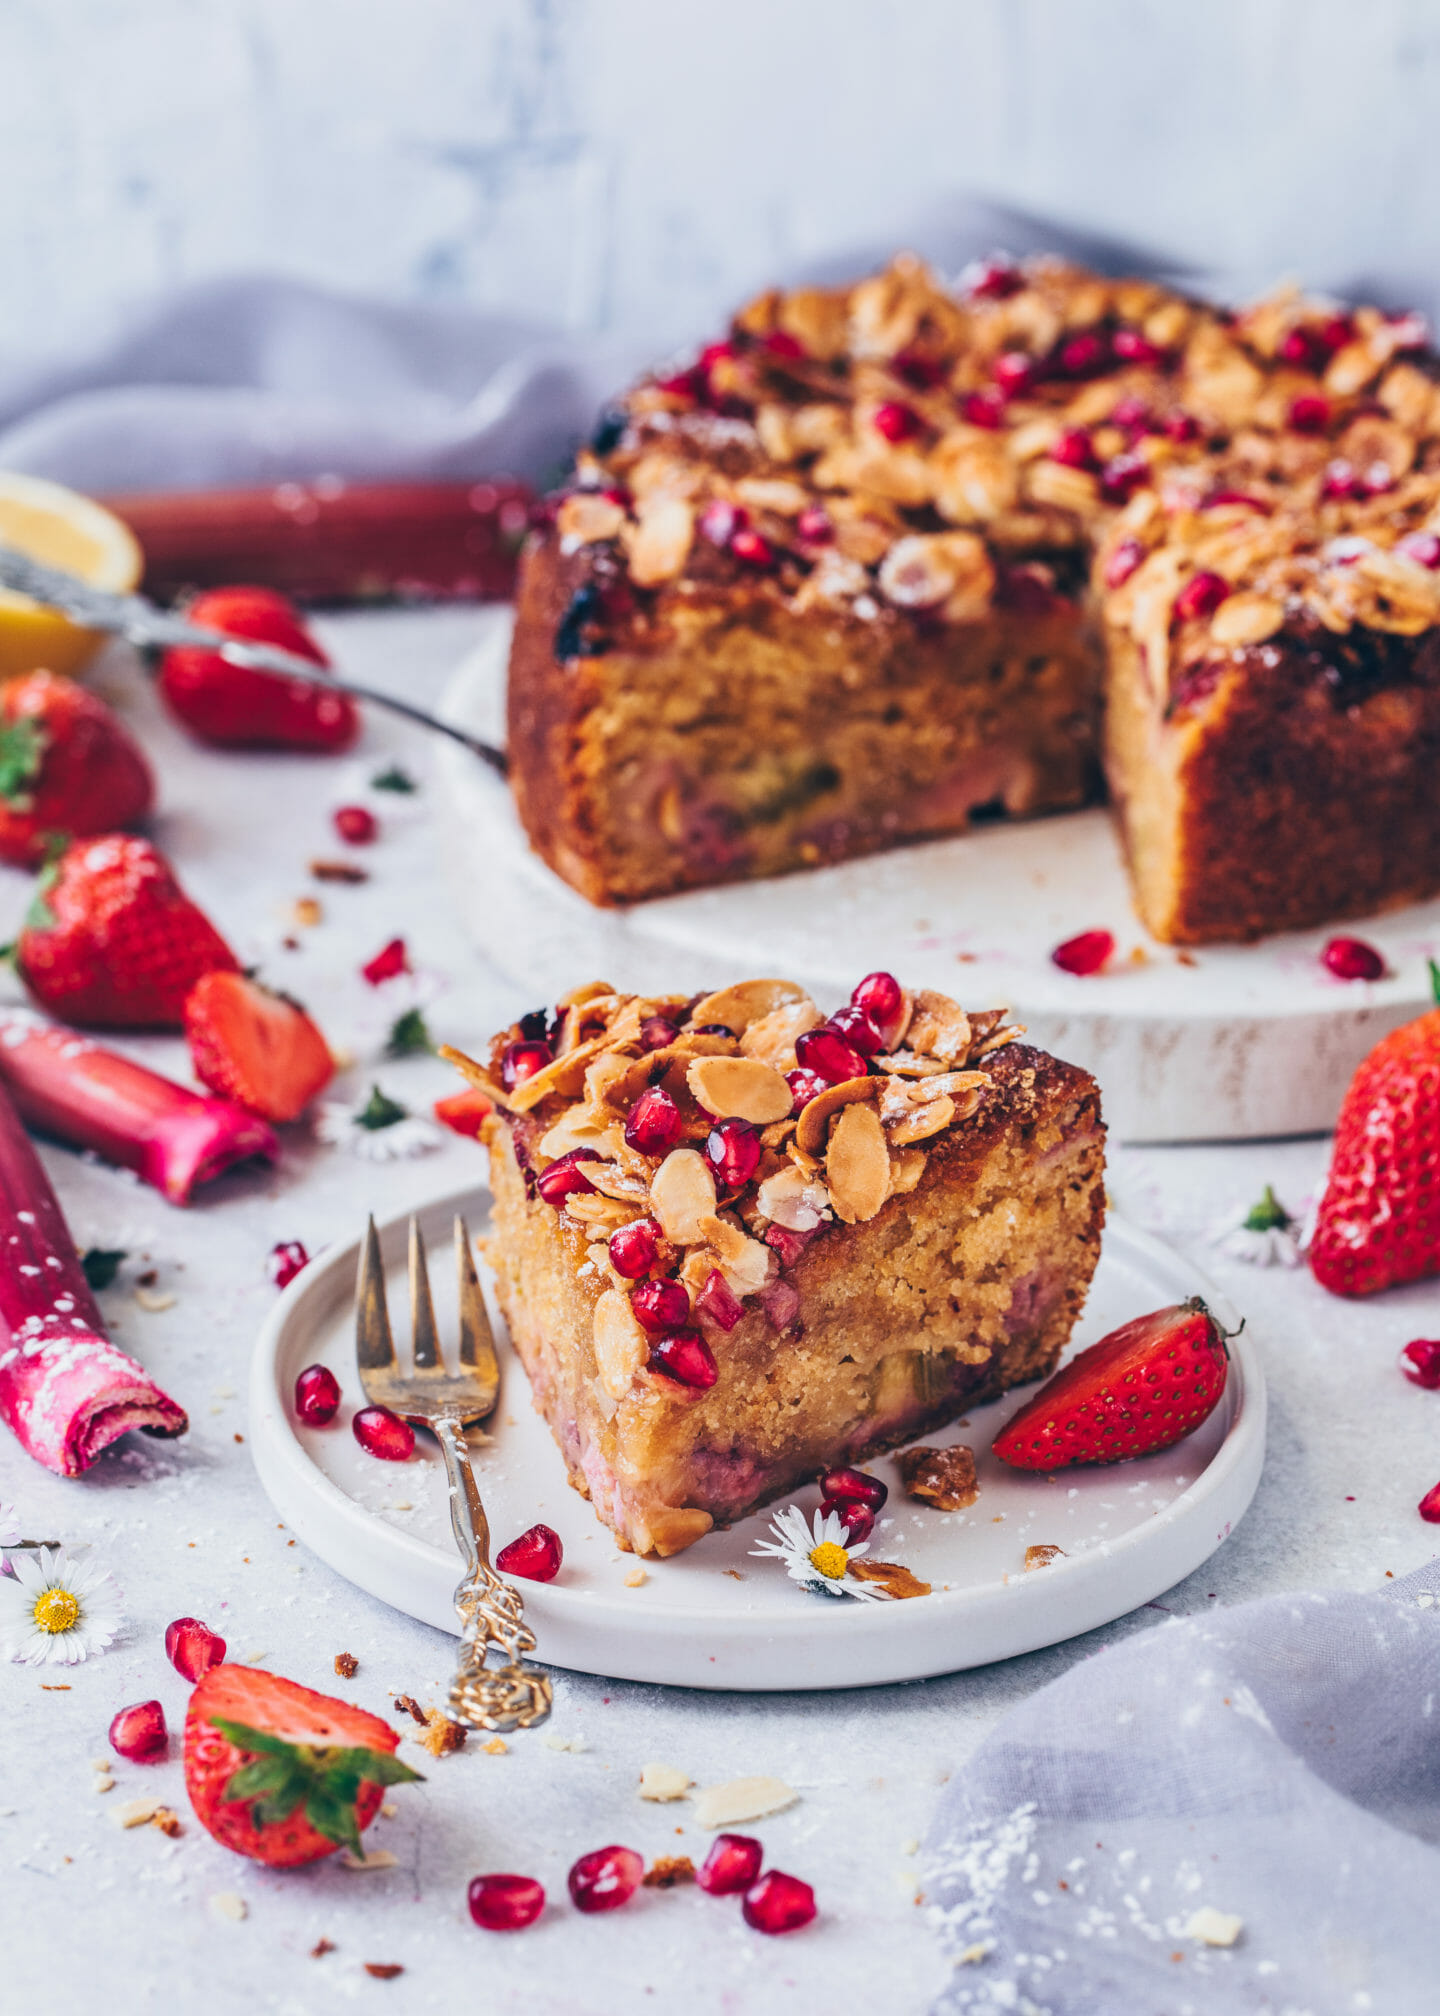 Strawberry Rhubarb Cake with Almonds and pomegranate (food photography, food styling)